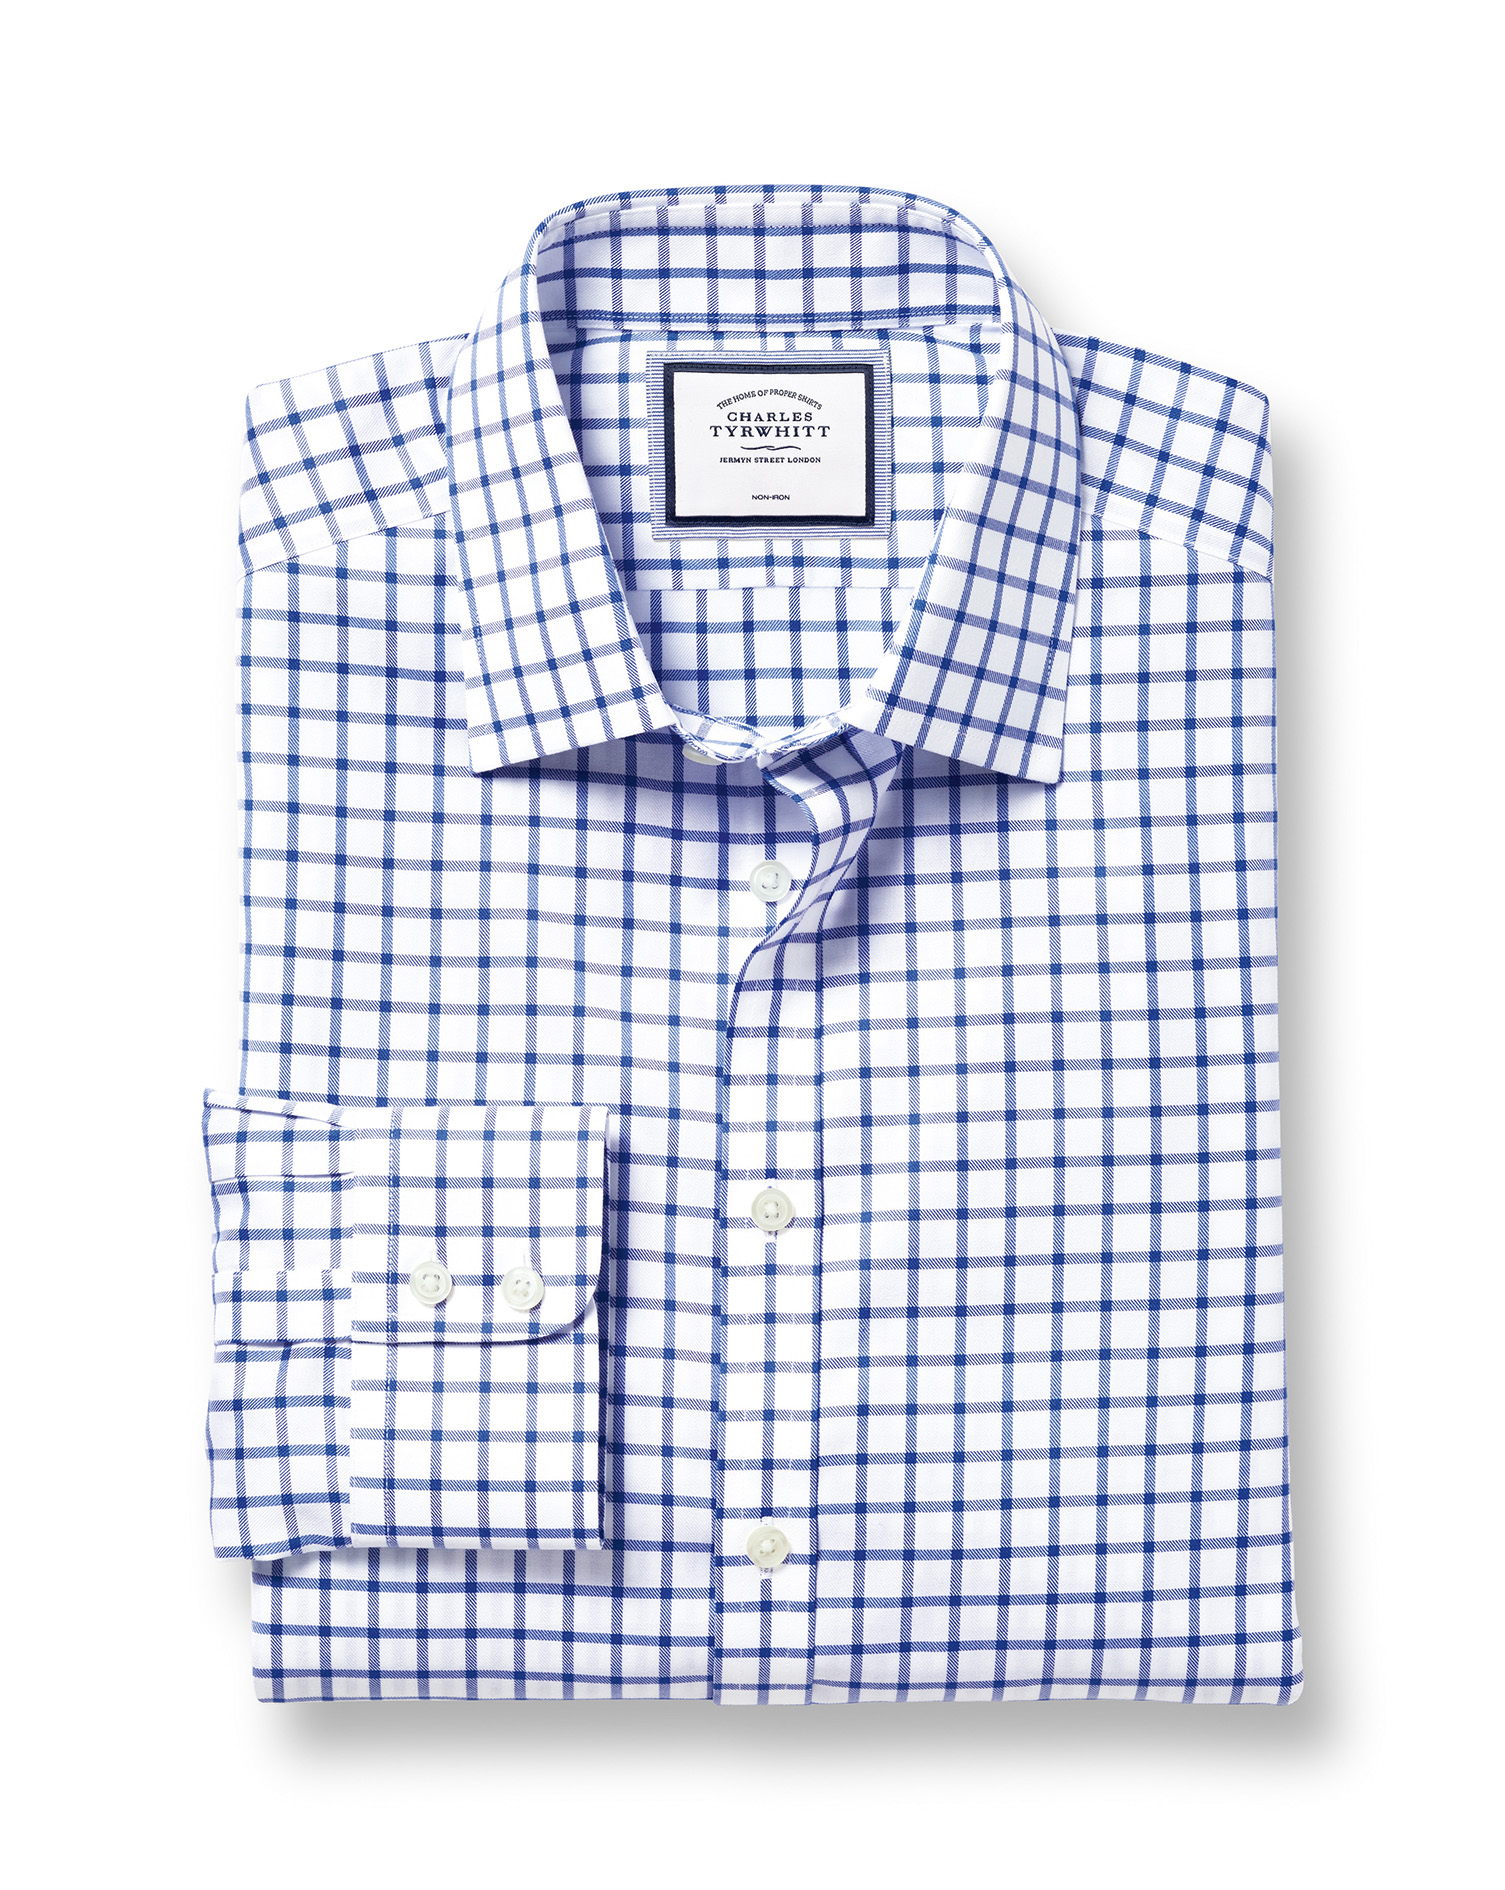 Classic Fit Non-Iron Twill Grid Check Royal Blue Cotton Formal Shirt Double Cuff Size 16.5/33 by Cha